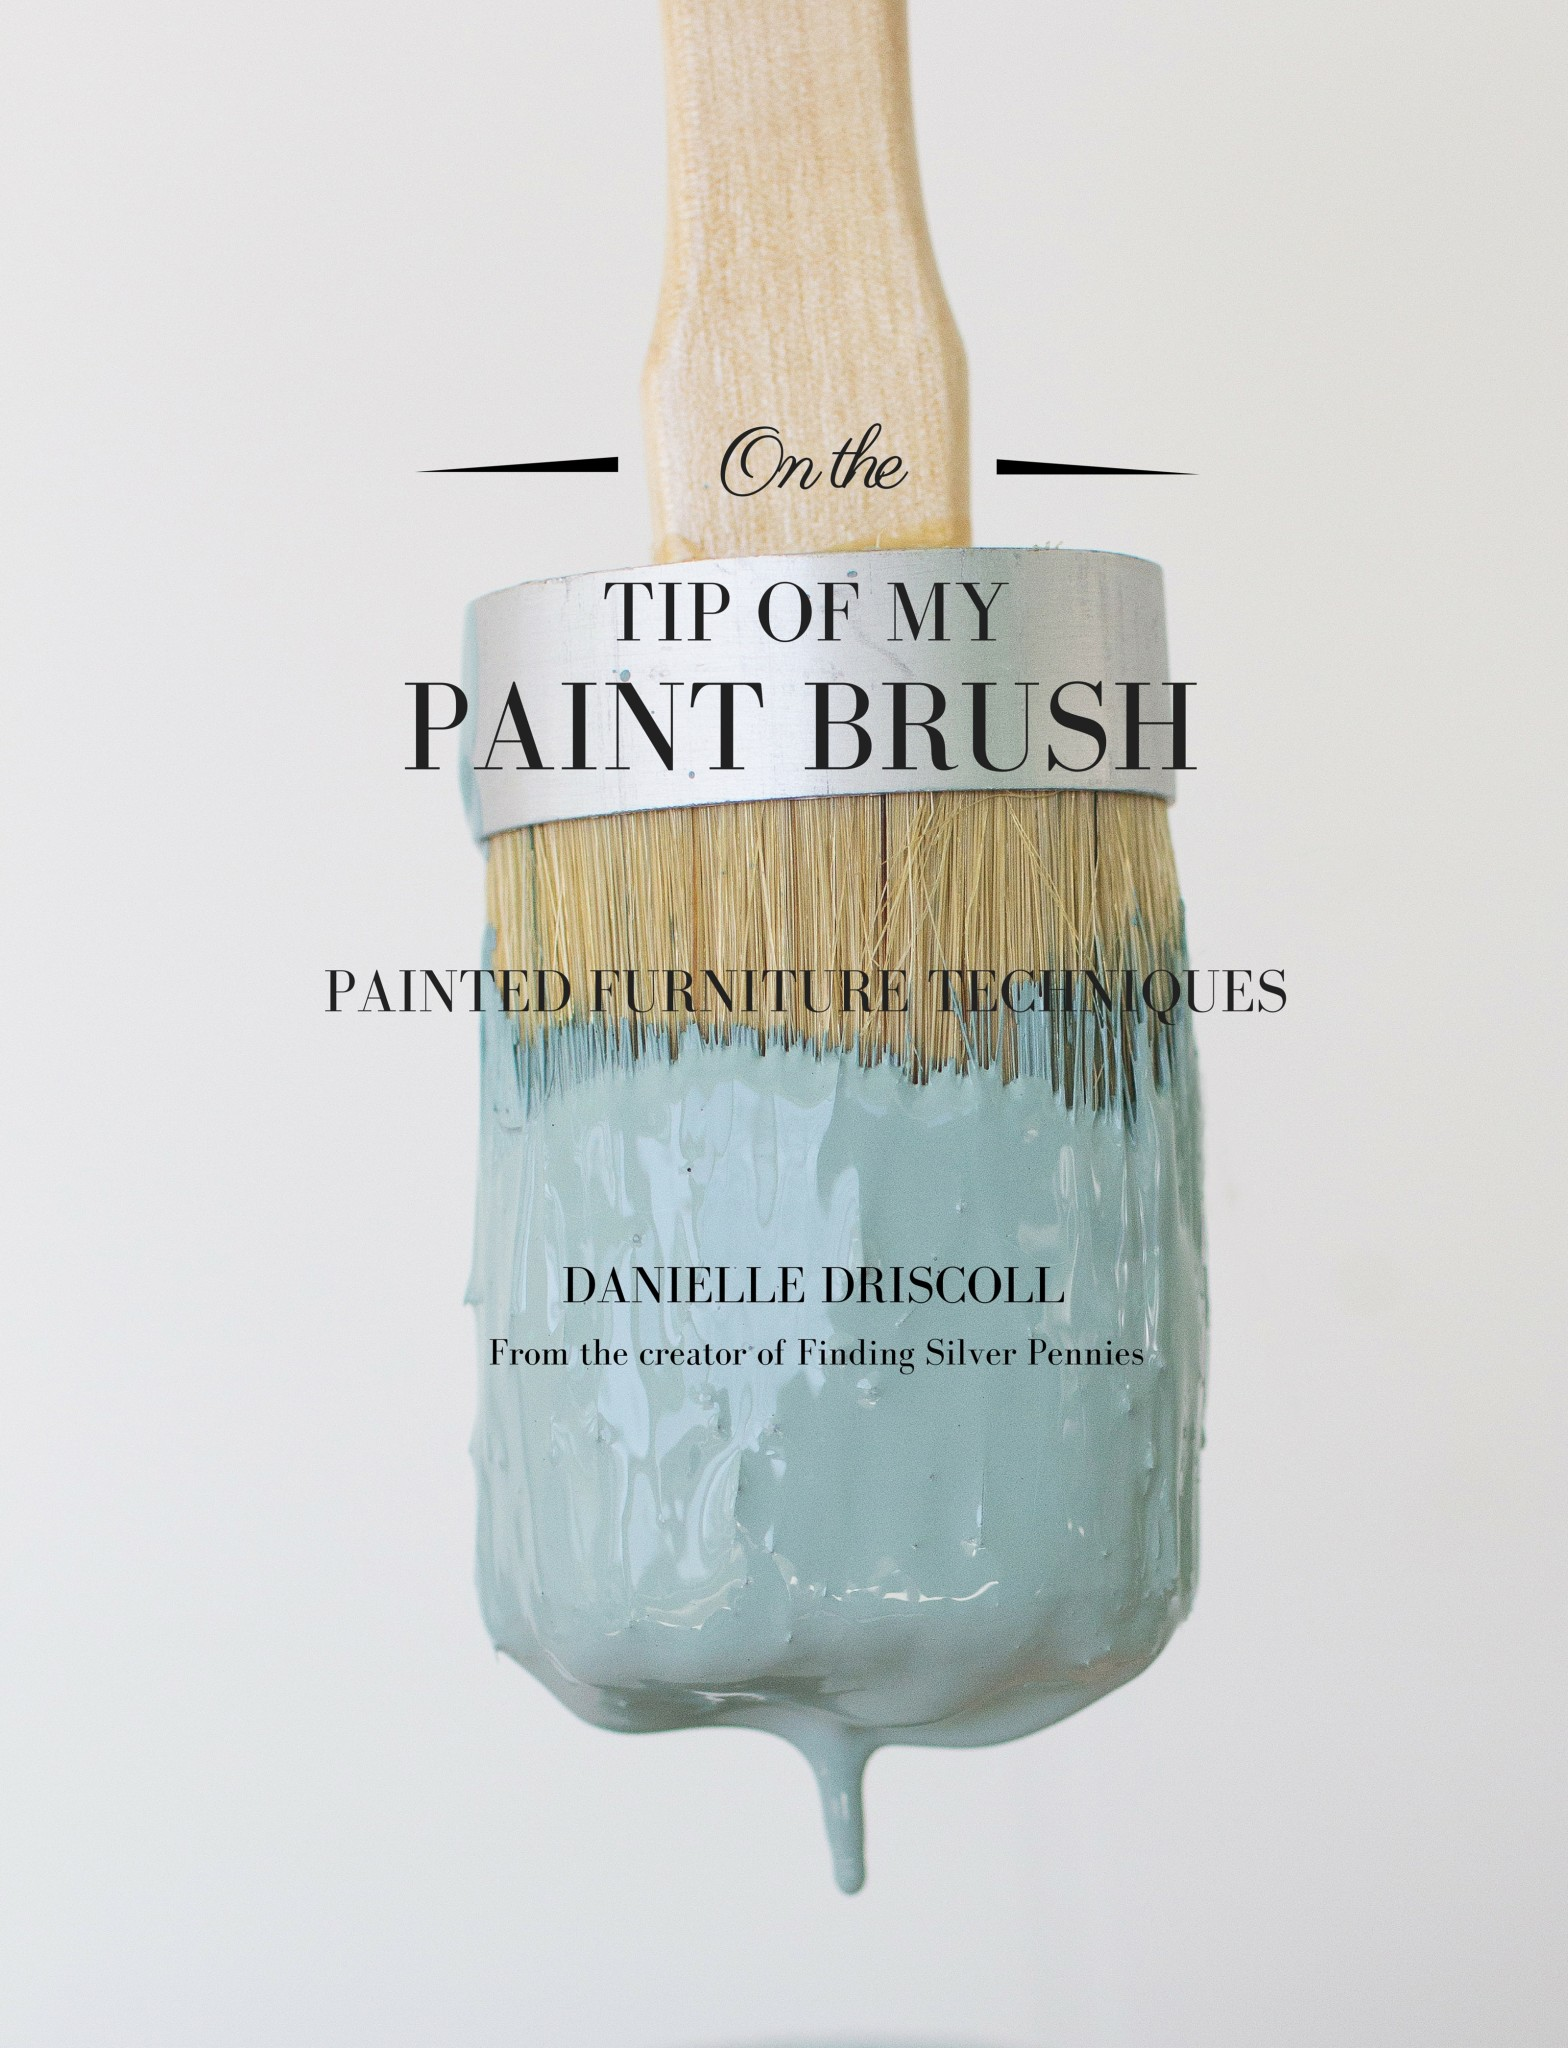 On the Tip of My Paint Brush - Painted Furniture Techniques book by Danielle Driscoll